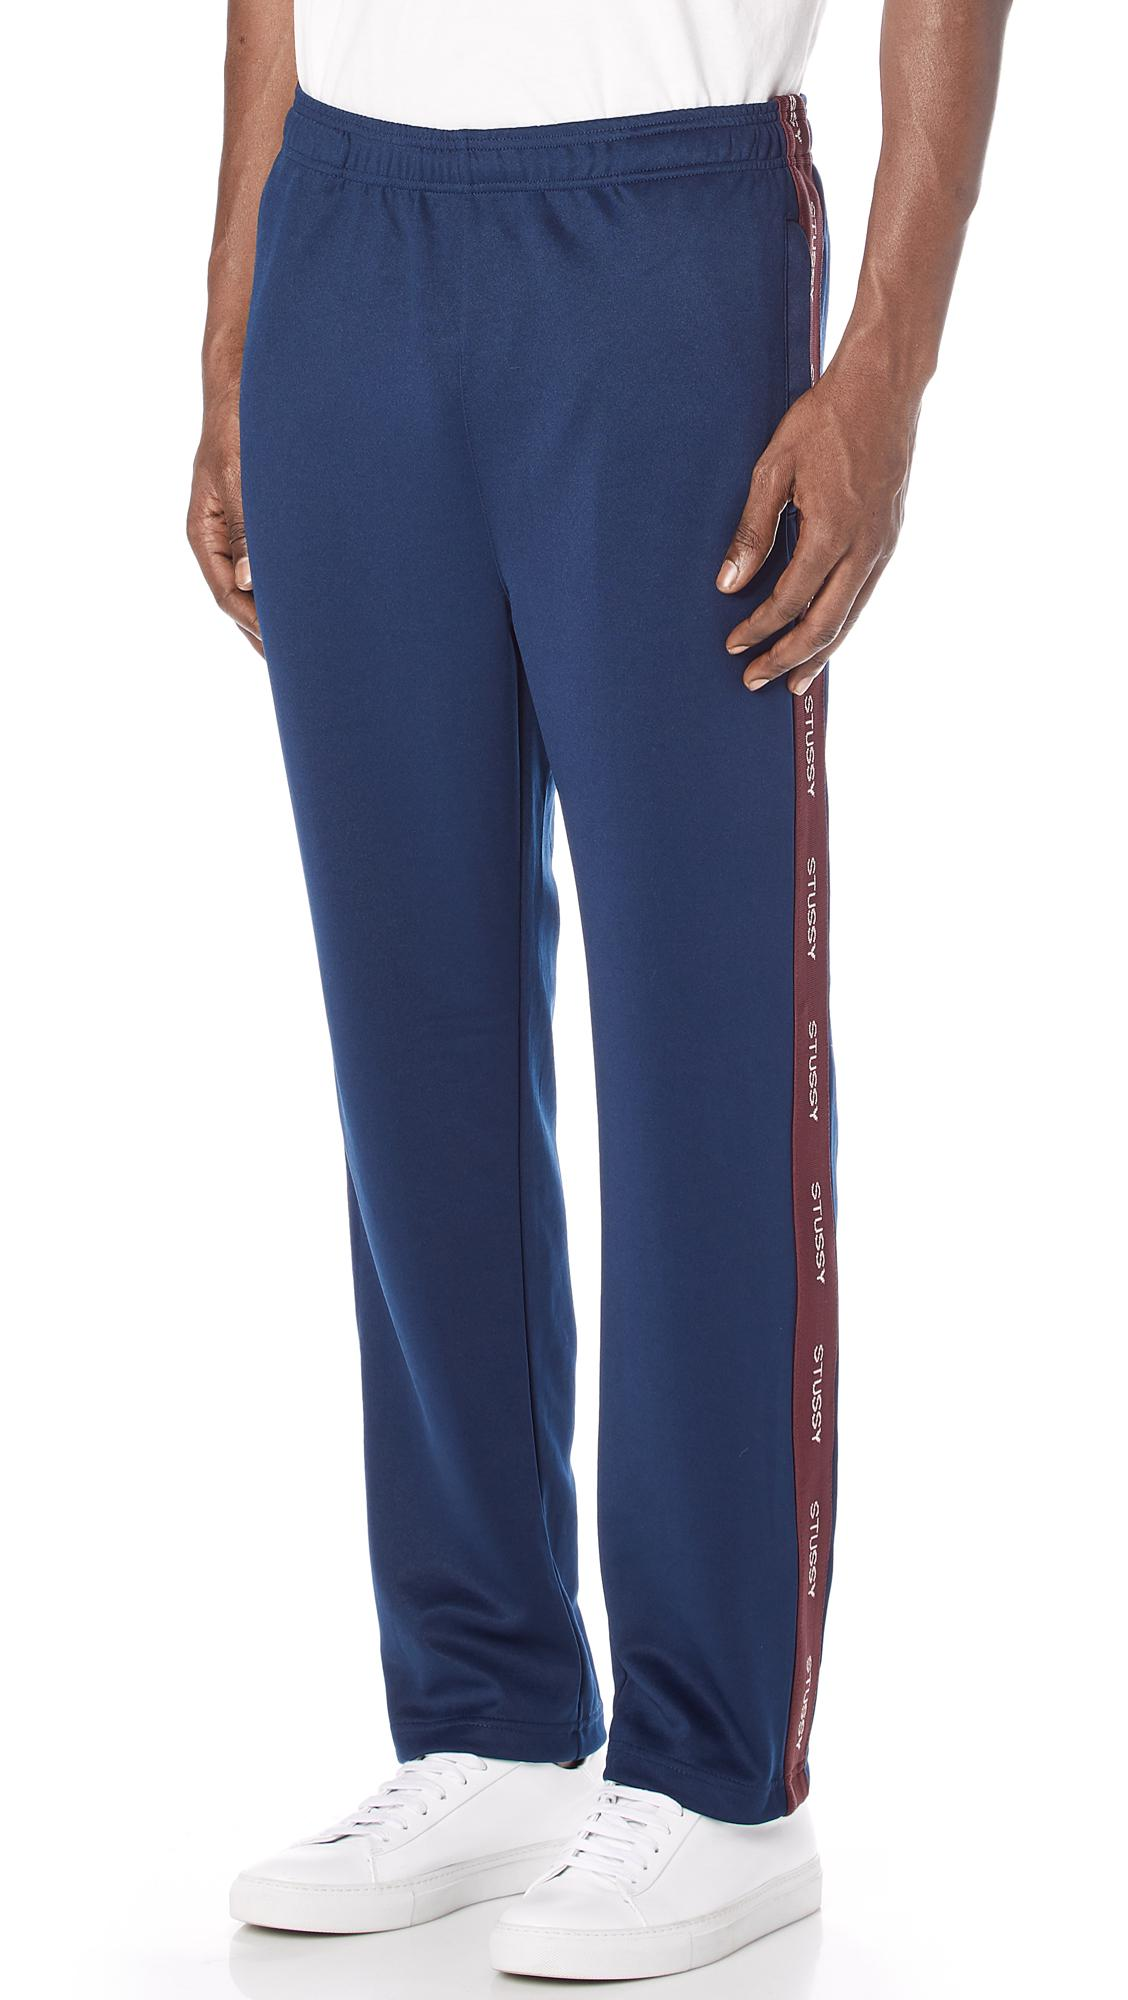 Stussy Synthetic Poly Track Pants in Navy (Blue) for Men